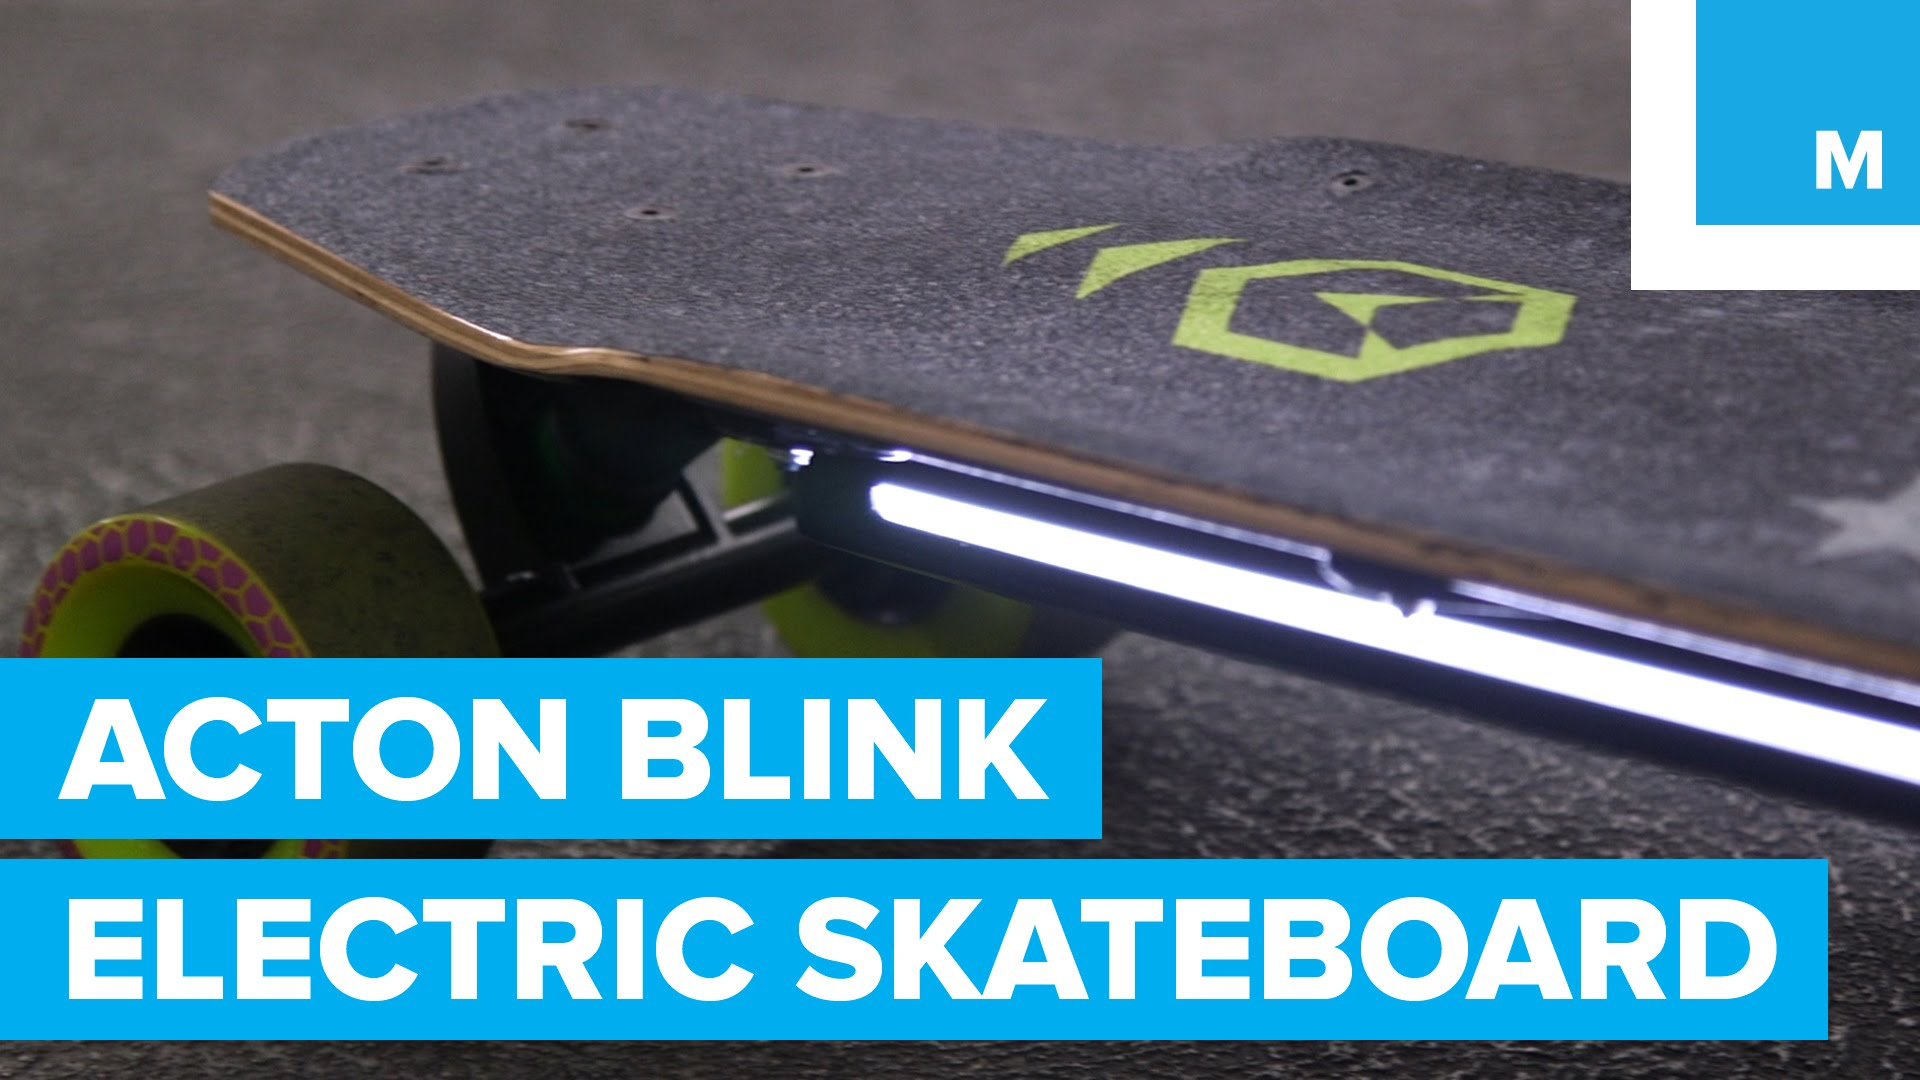 Small & Fast Acton Blink-Board Electric Skateboard is Great to Ride